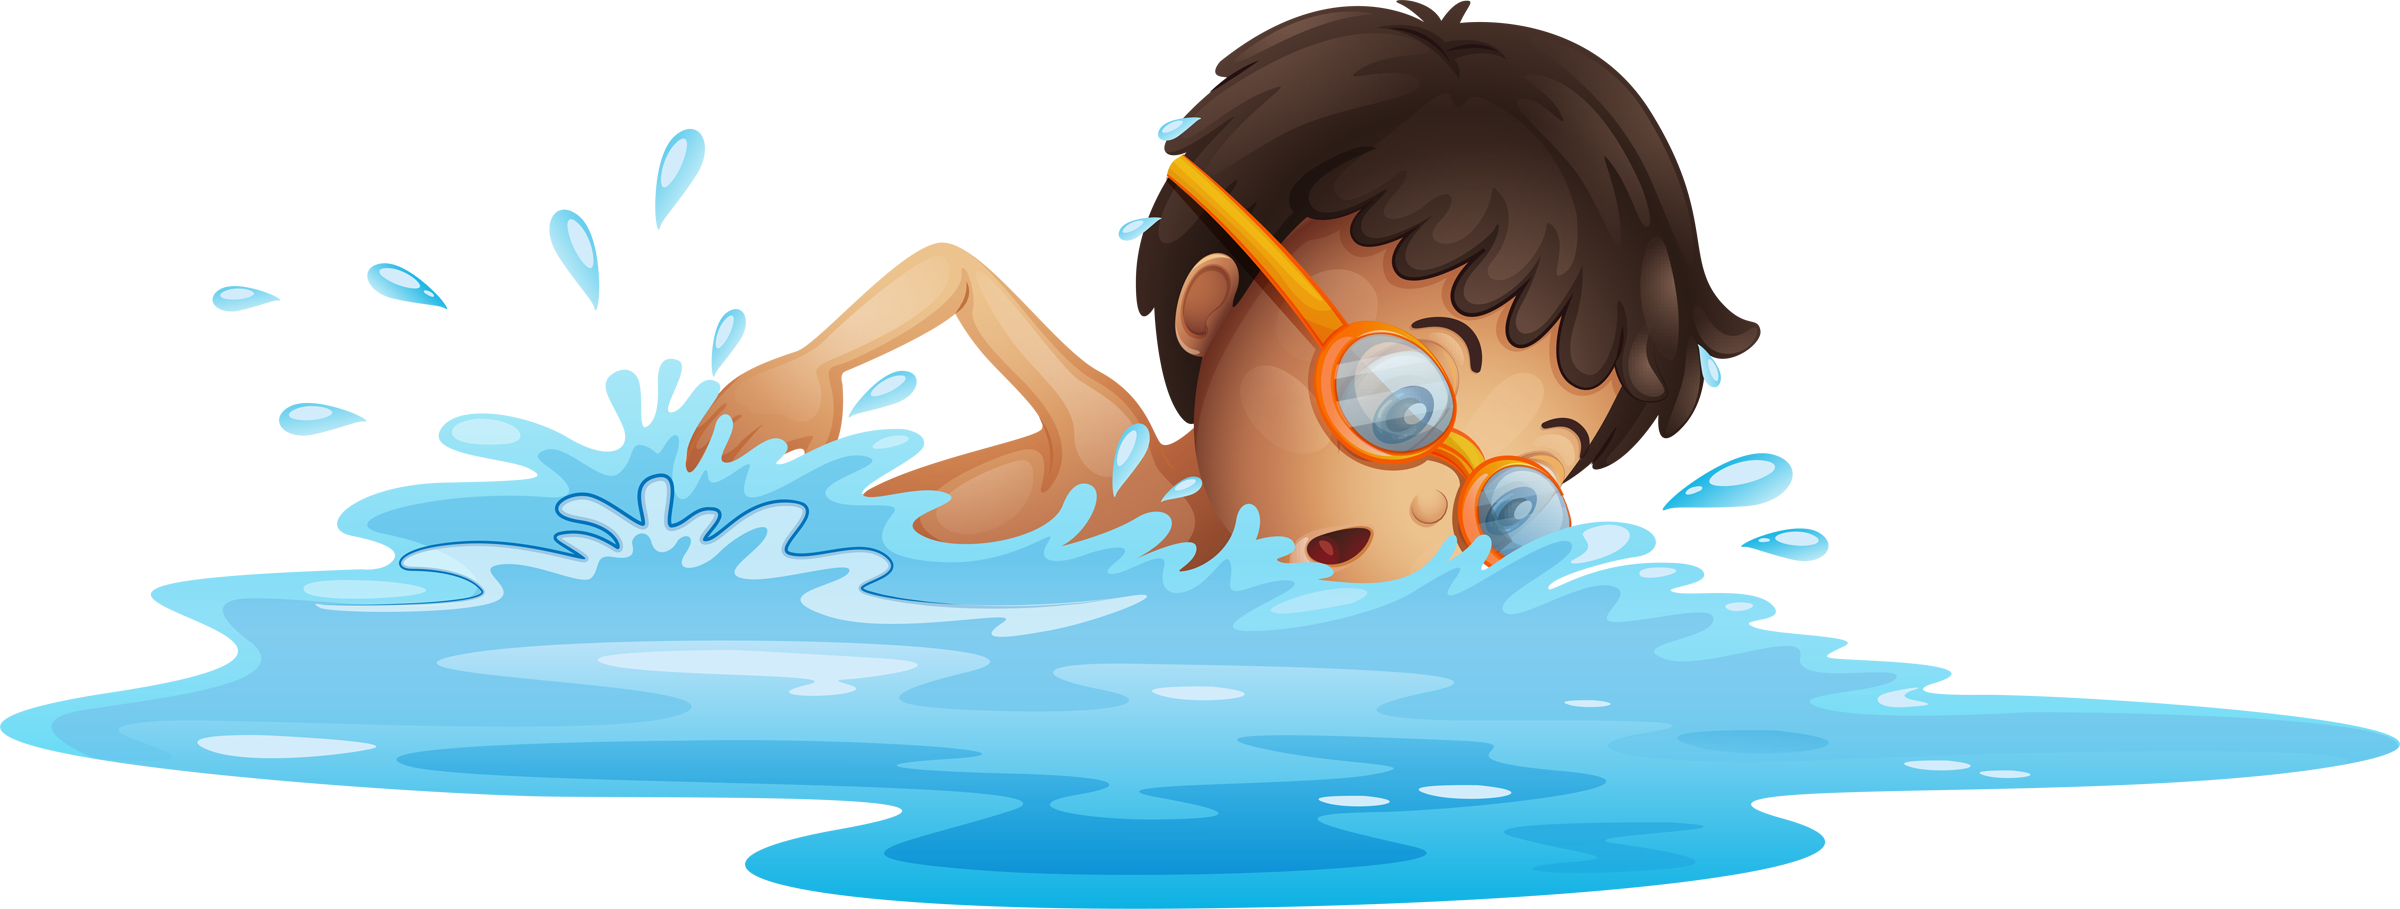 Download swimming png pic hq png image freepngimg for Swimming images